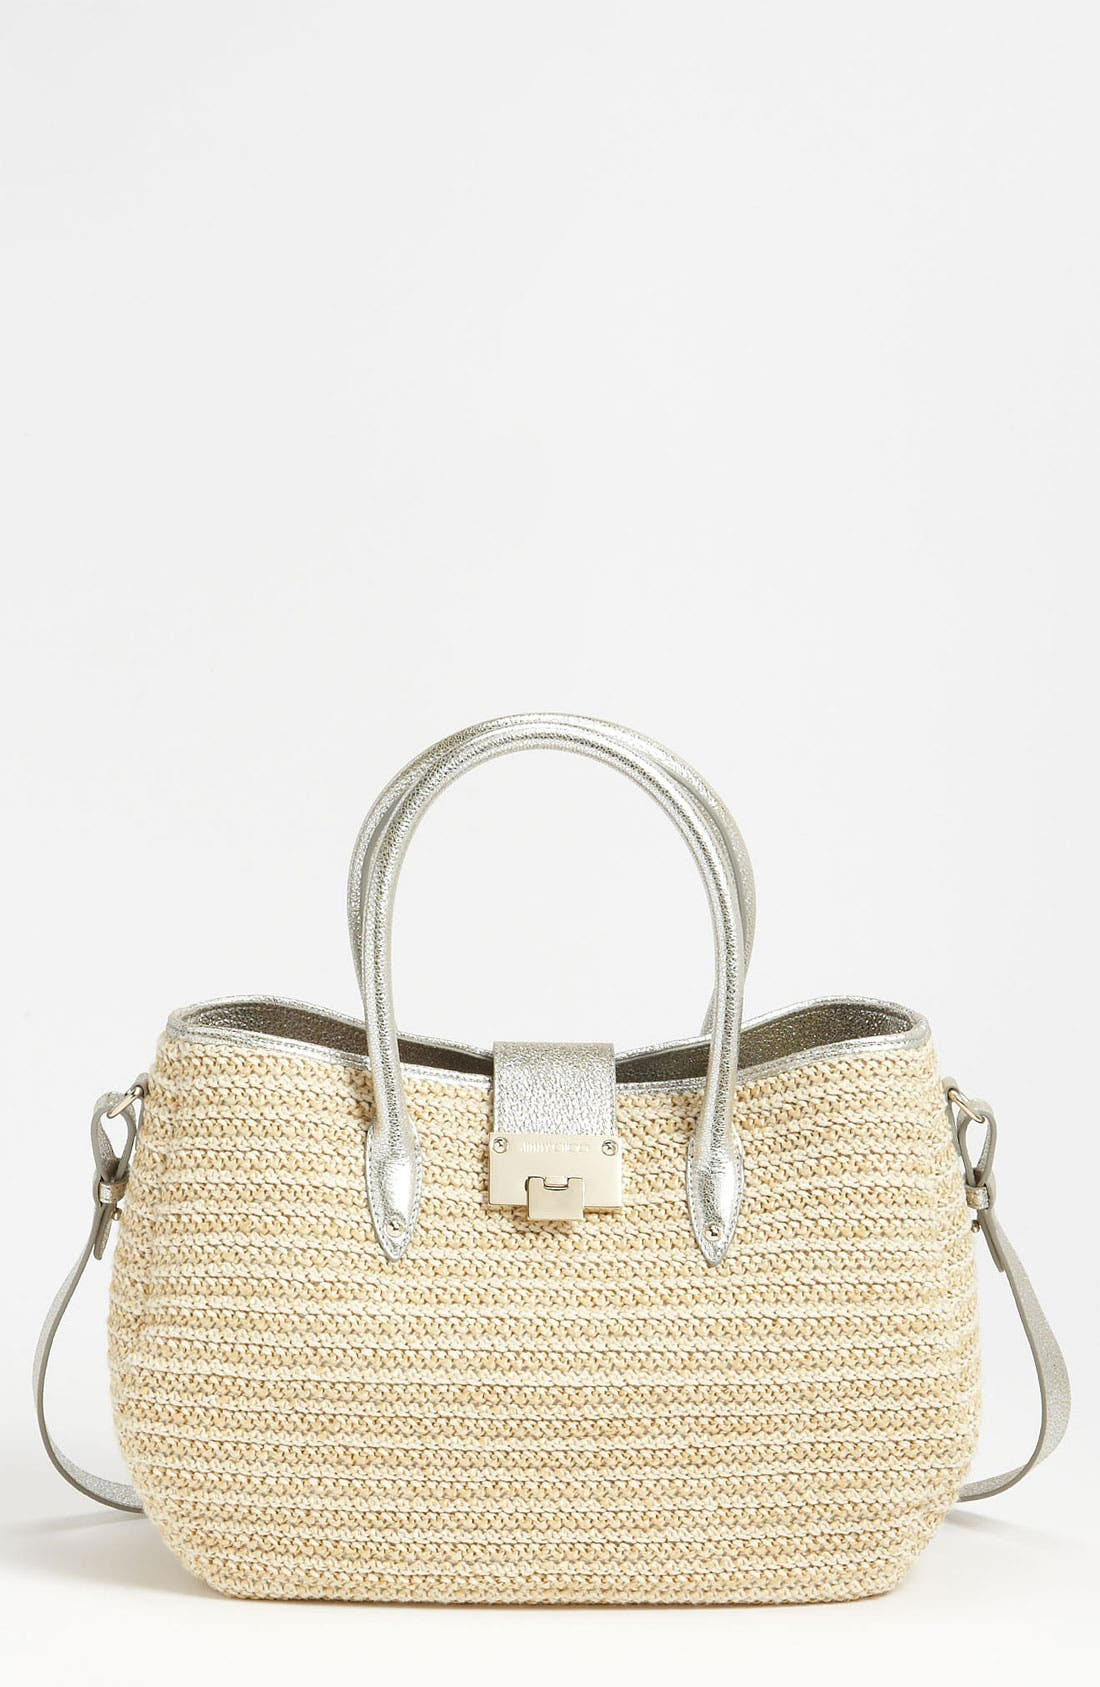 Alternate Image 1 Selected - Jimmy Choo 'Rania' Raffia Tote